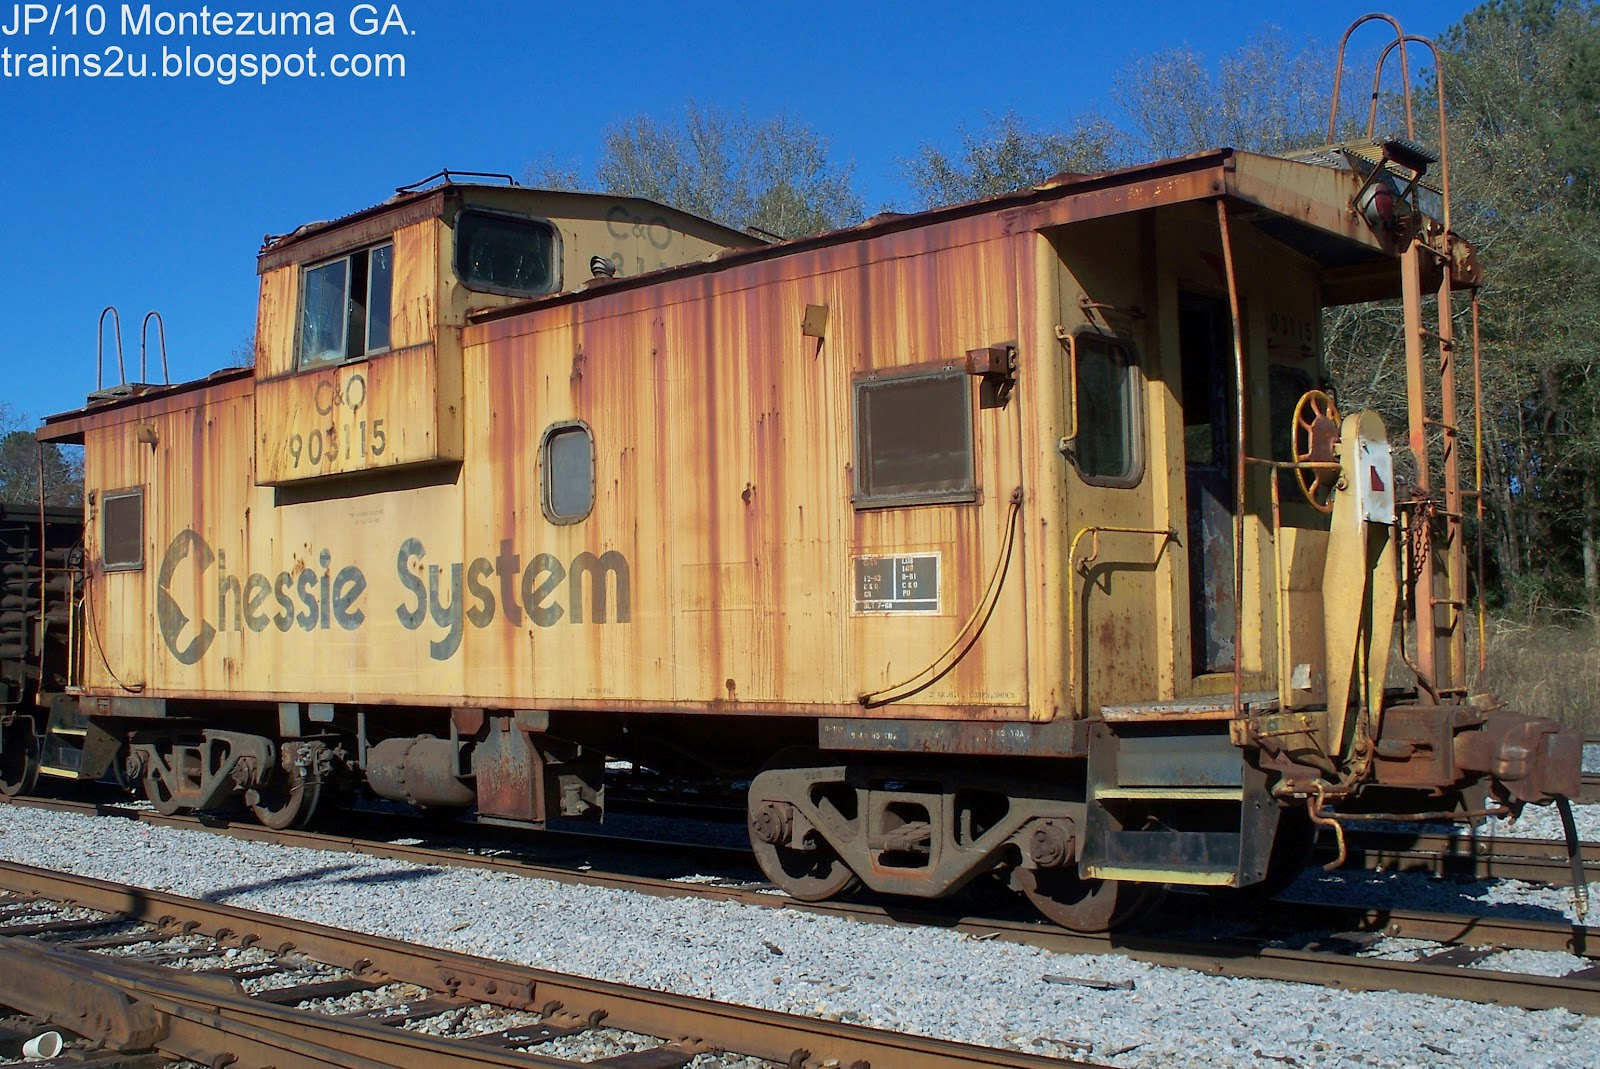 Train Caboose Template C&o chessie system caboose,